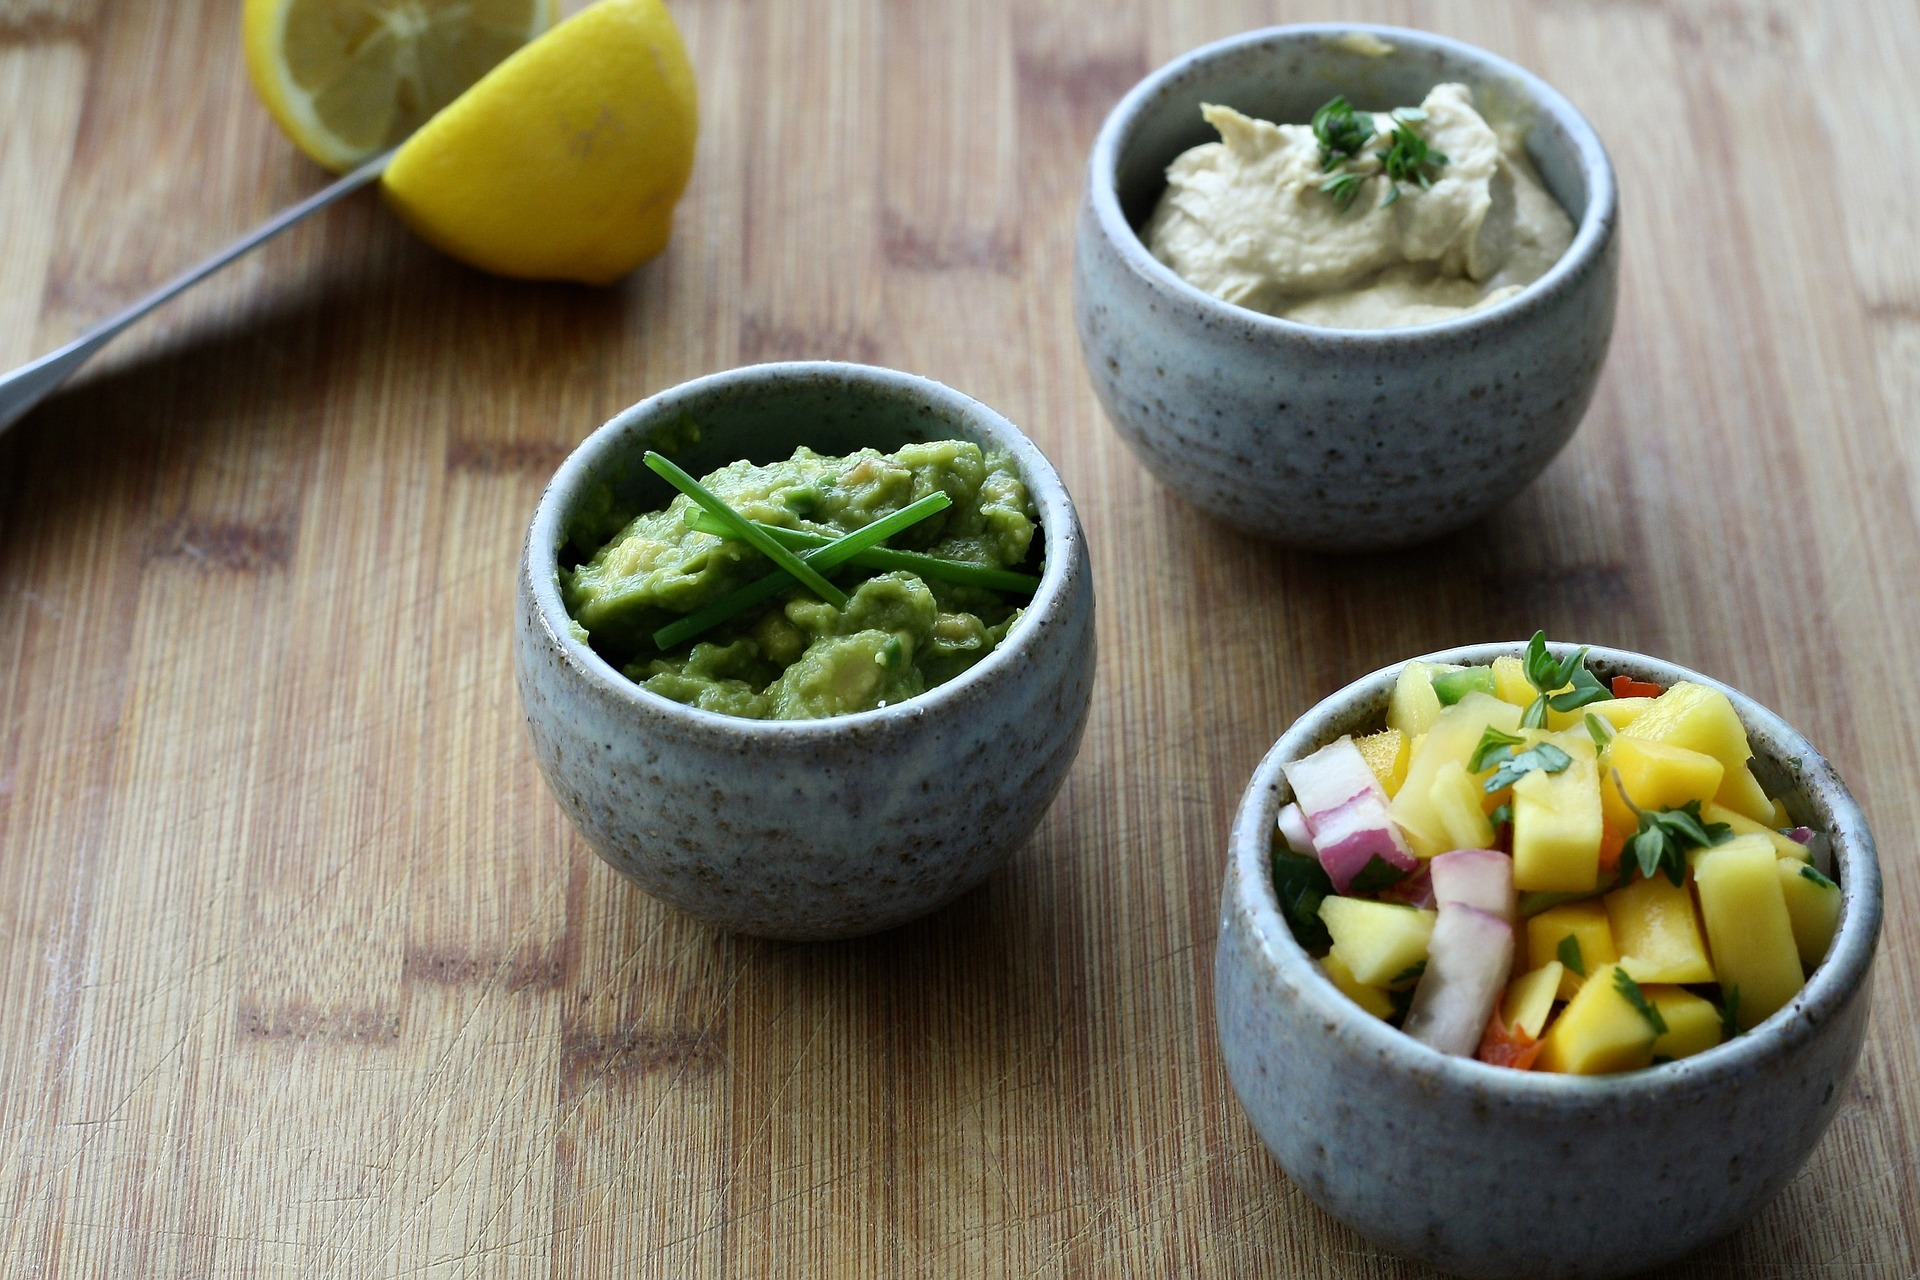 Get ready for tasty guacamole choices at Barrio Queen.